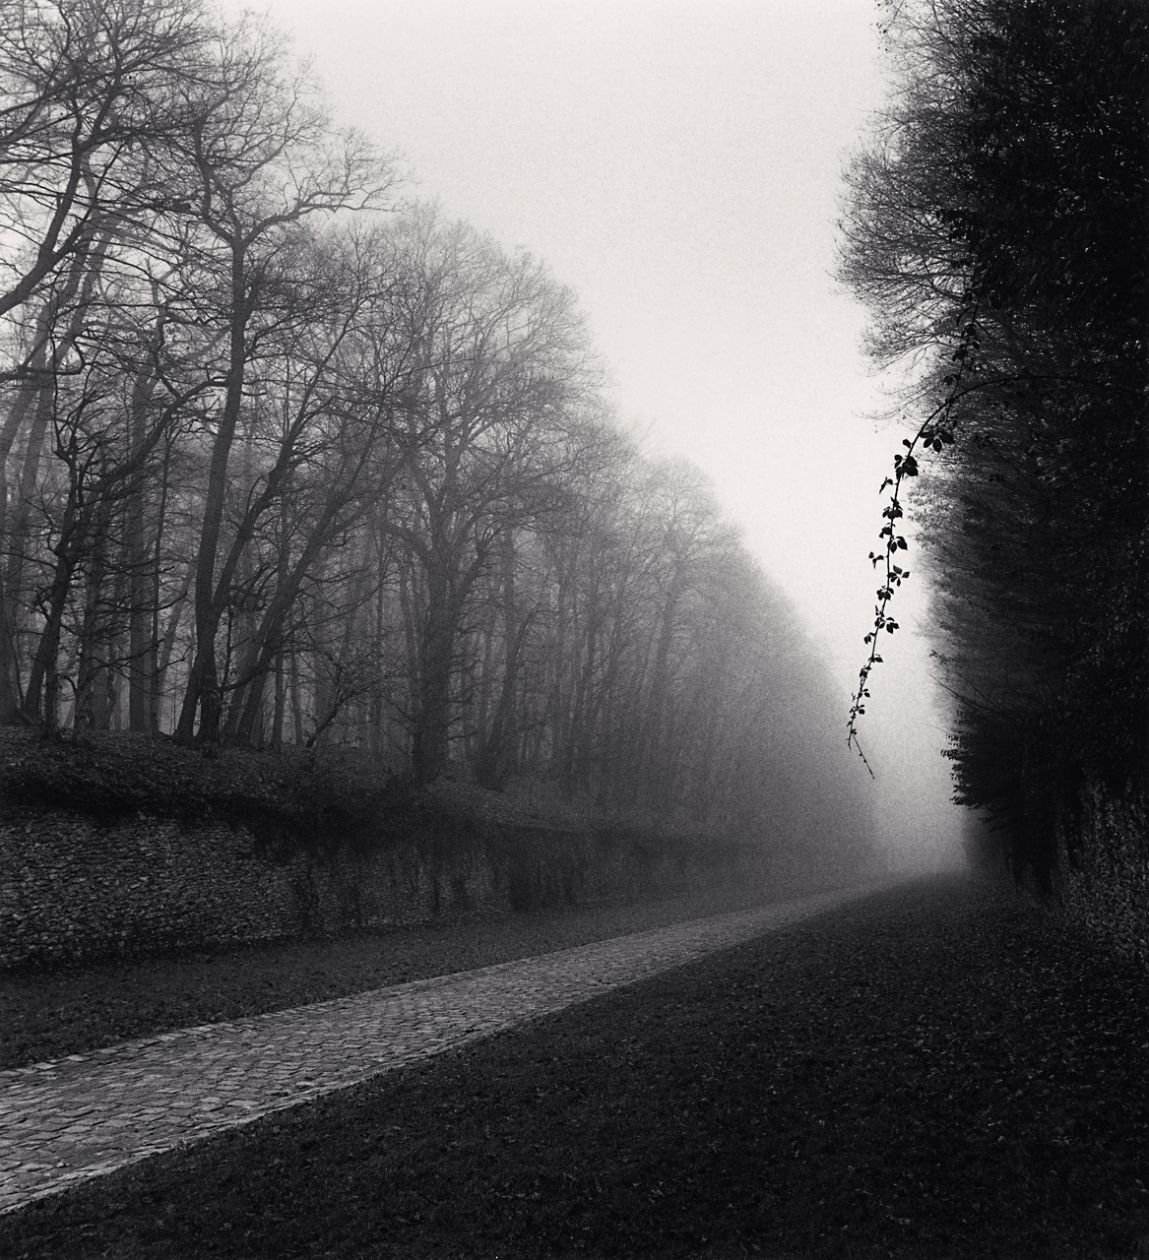 Suspended Vine, Marly (1995) by Michael Kenna